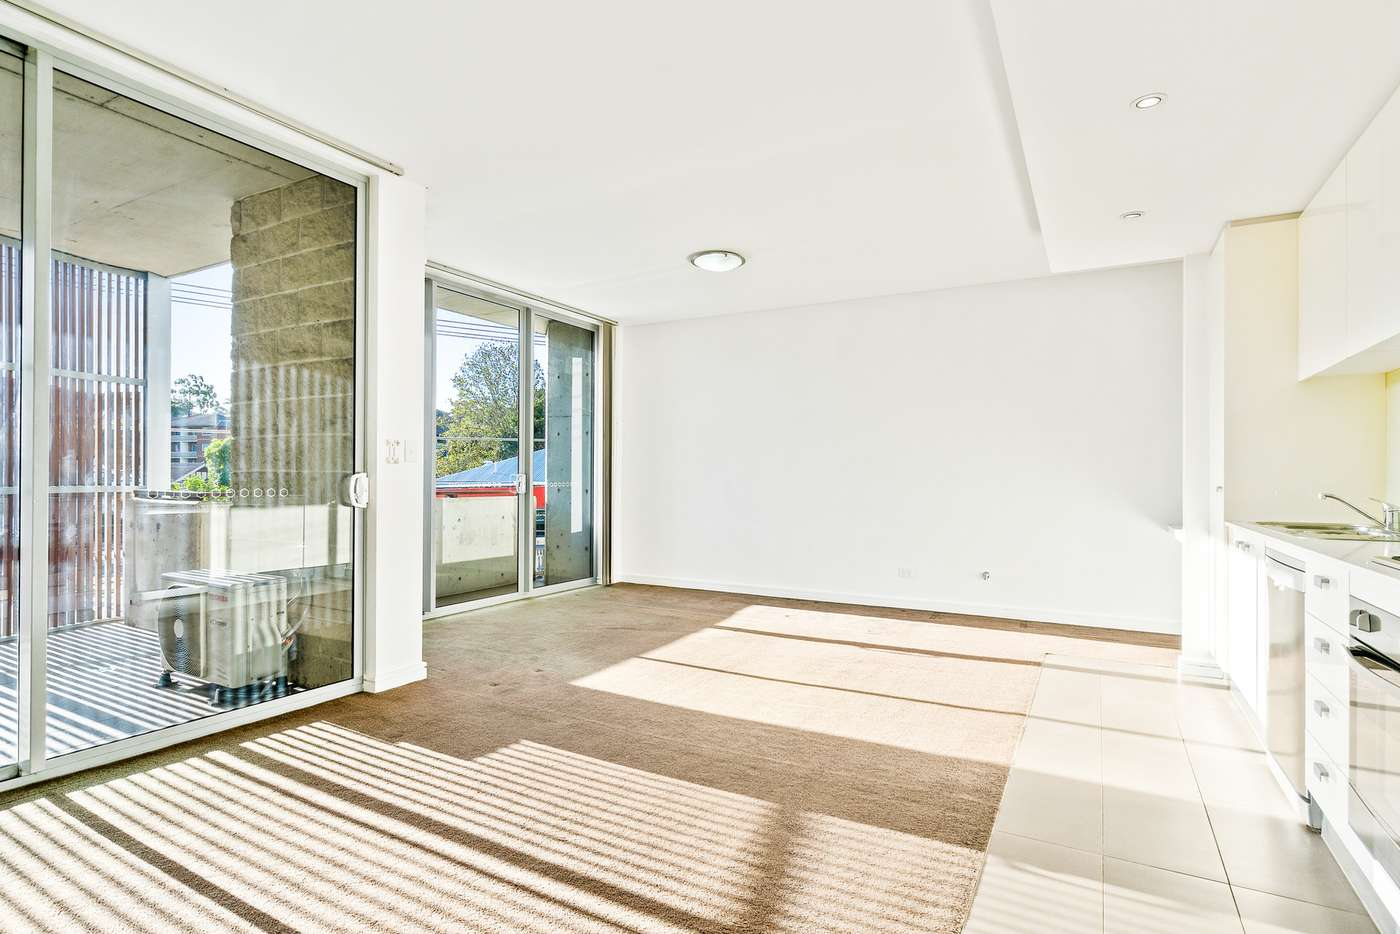 Main view of Homely apartment listing, 9/525 Illawarra Road, Marrickville NSW 2204